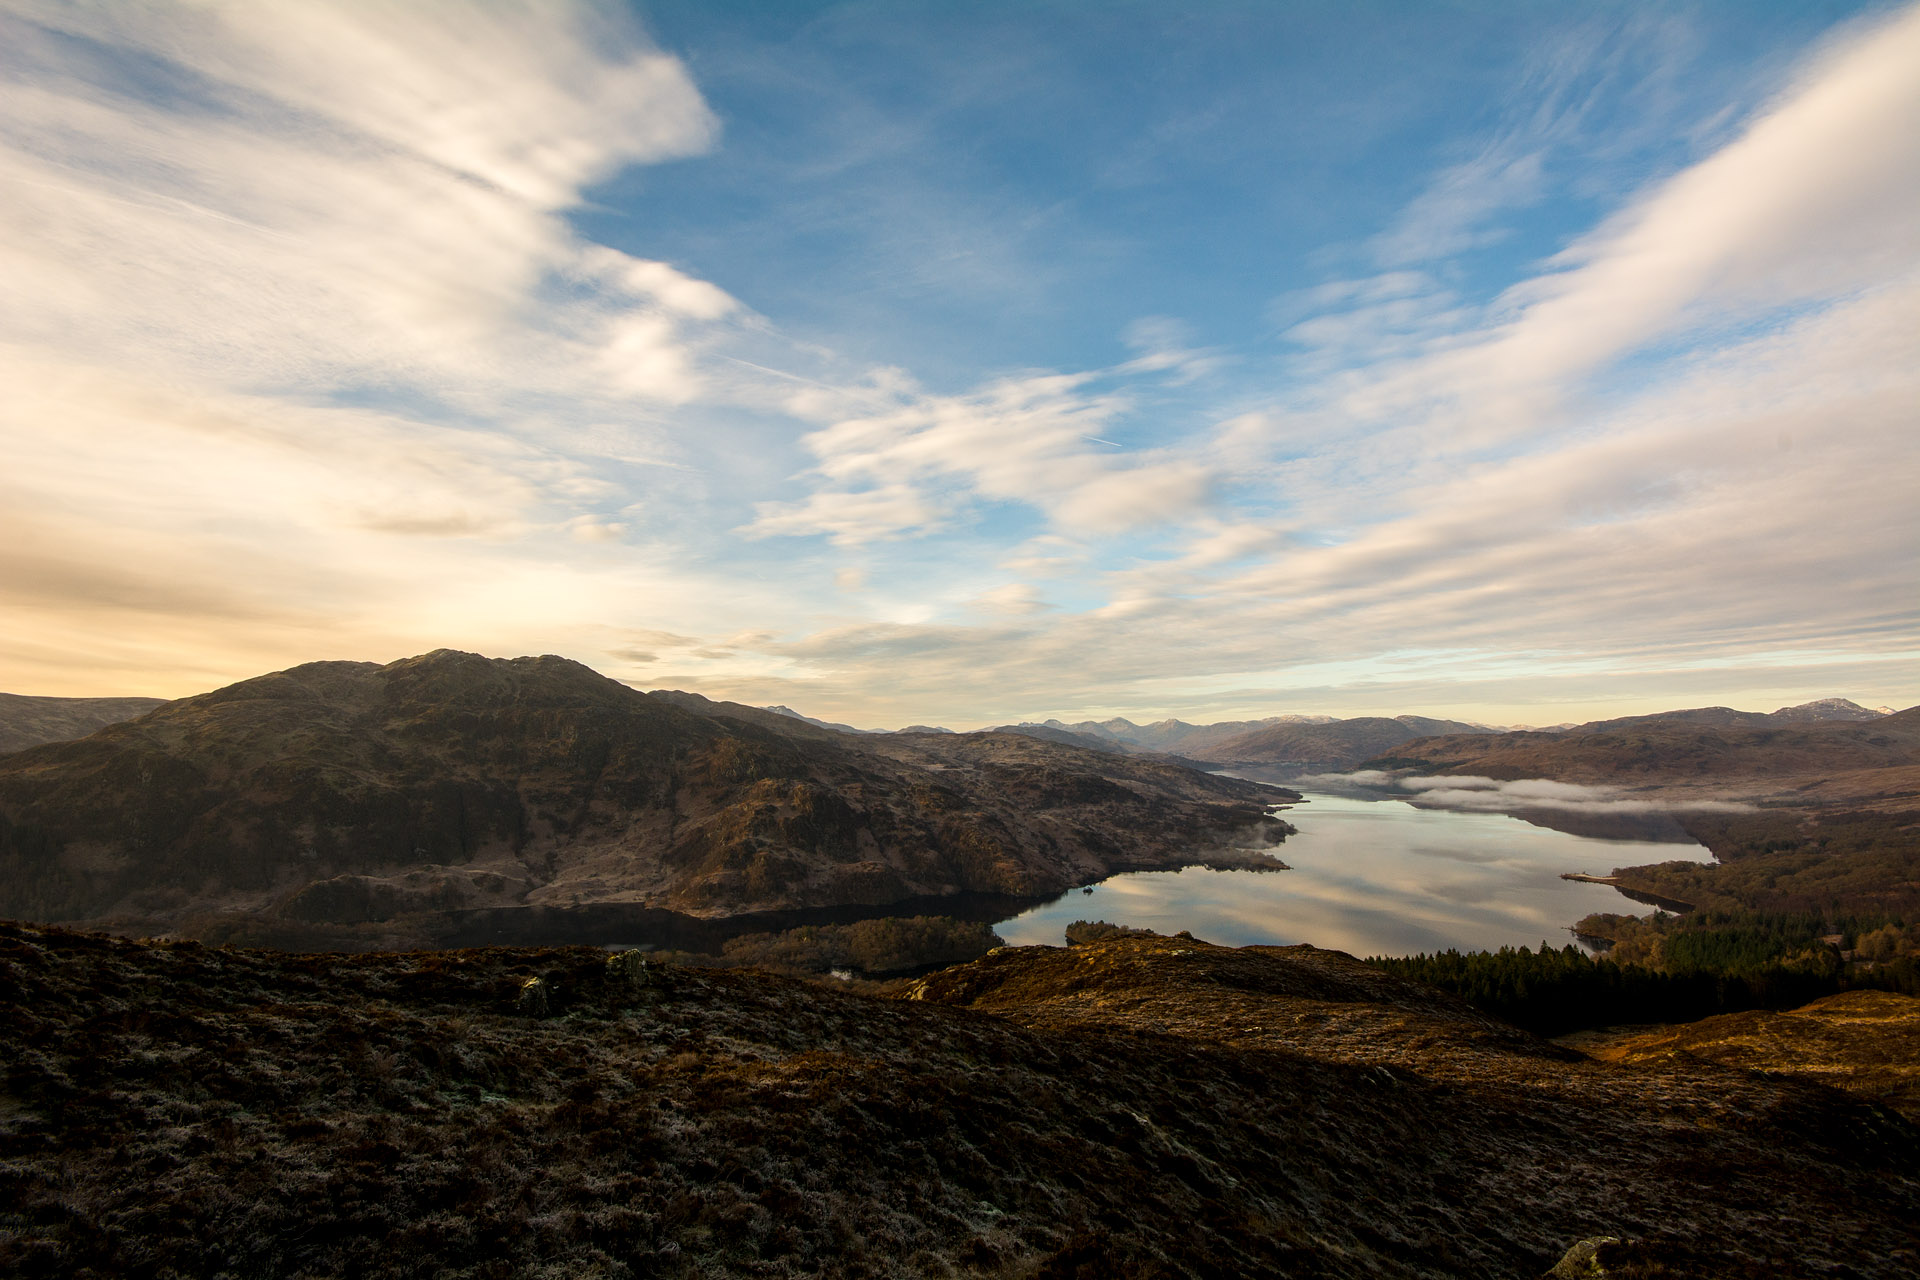 Loch Katrine & The Trossachs